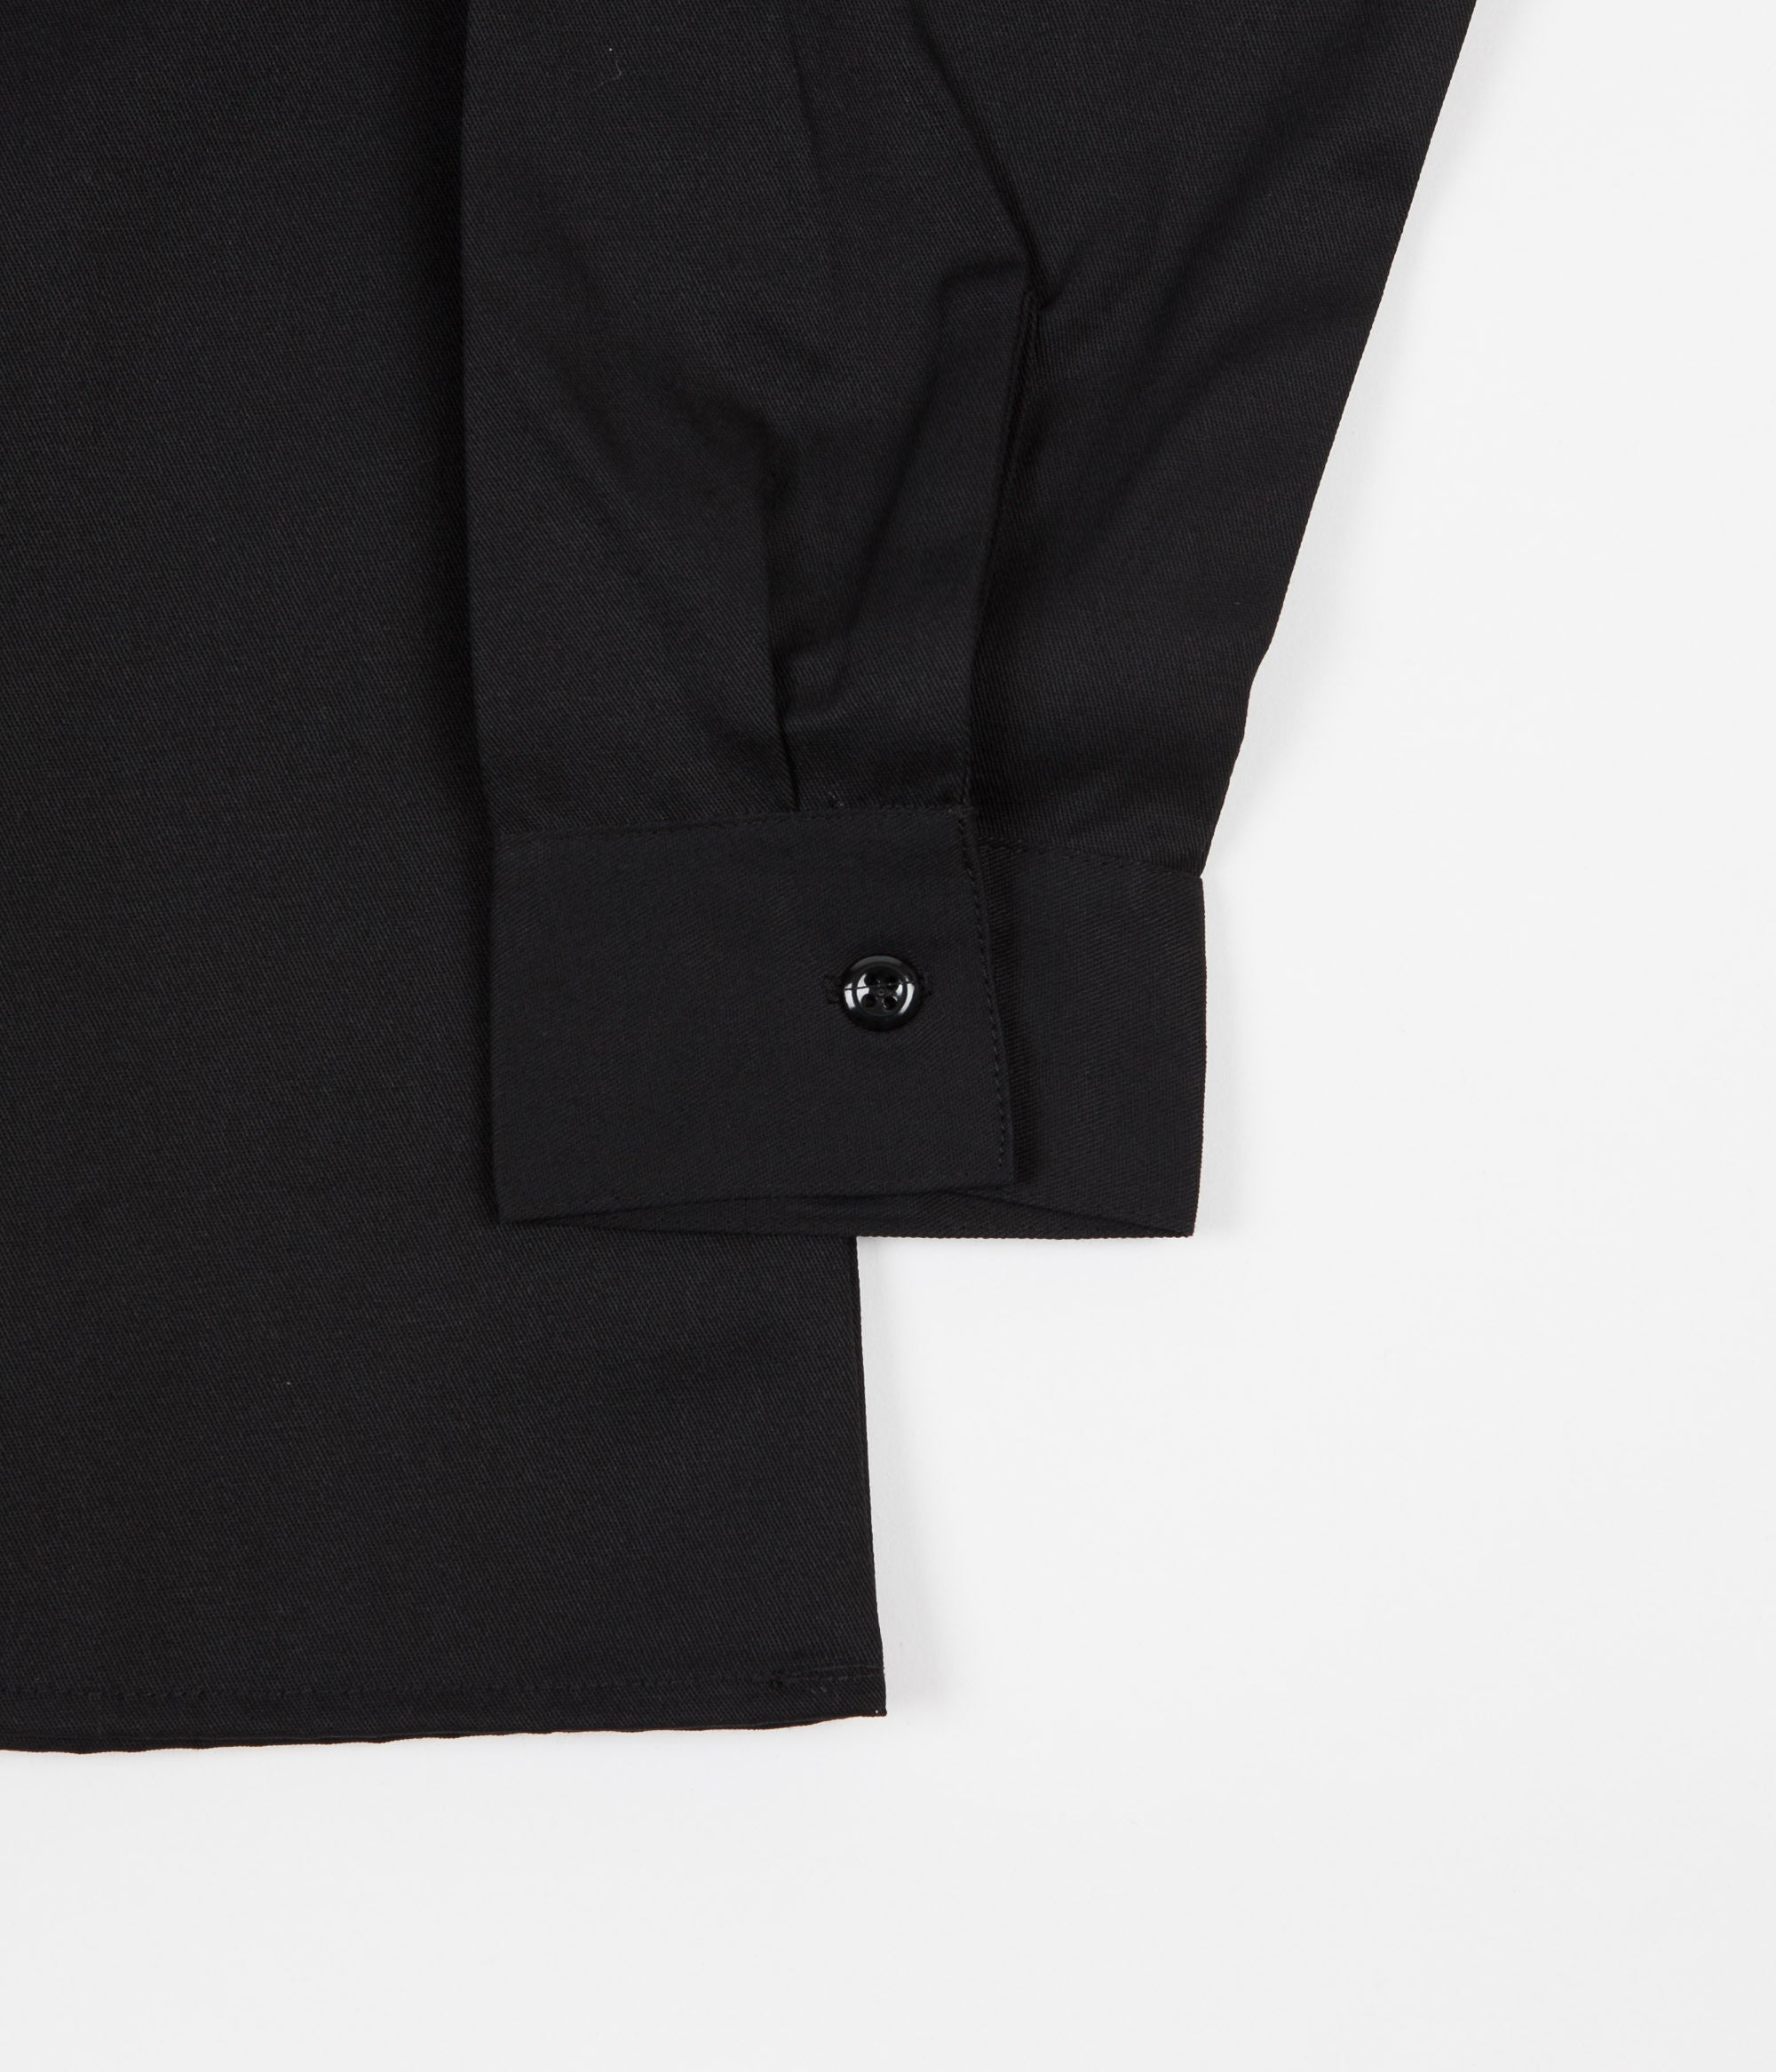 Ben Davis 1/2 Zip Long Sleeve Shirt - Black